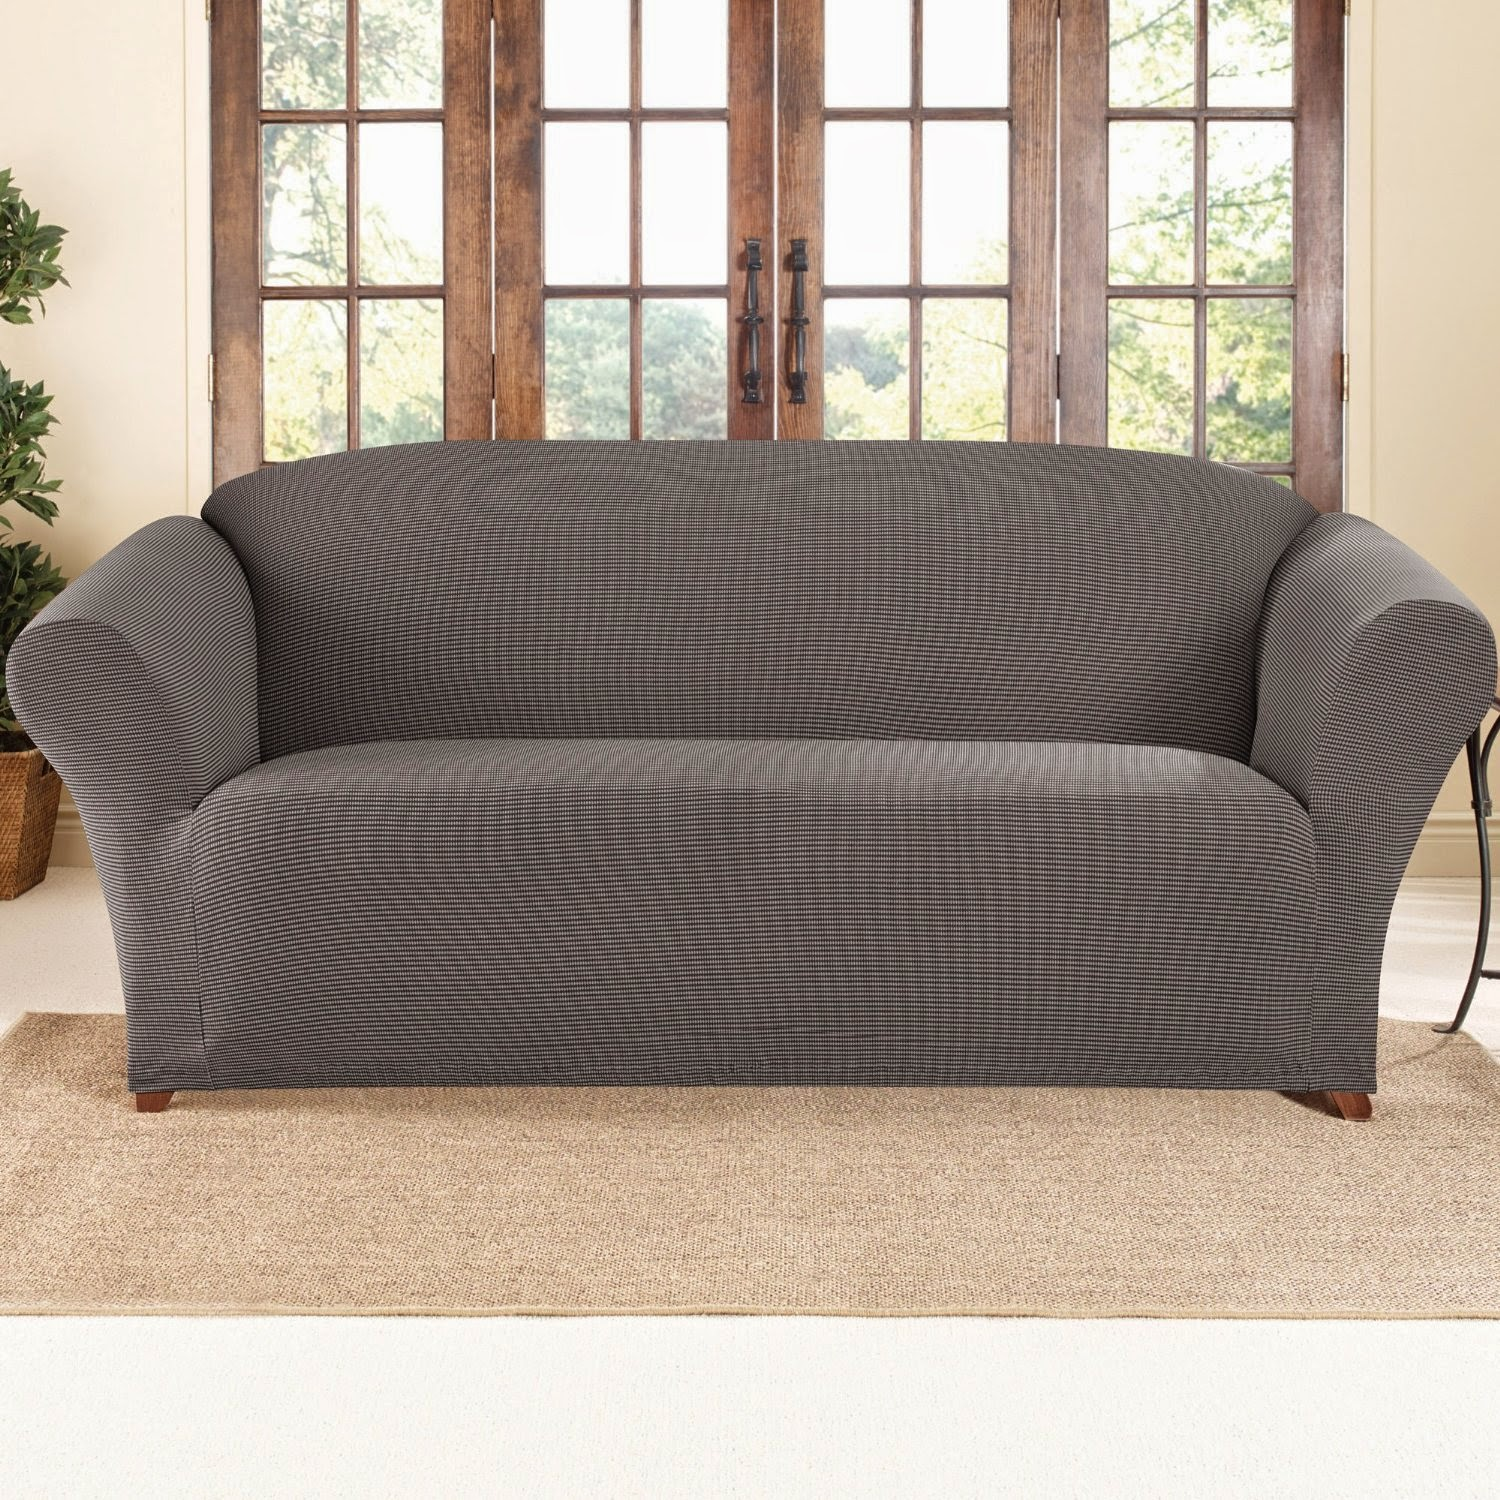 Sure Fit Gray Recliner Sofa Slipcovers